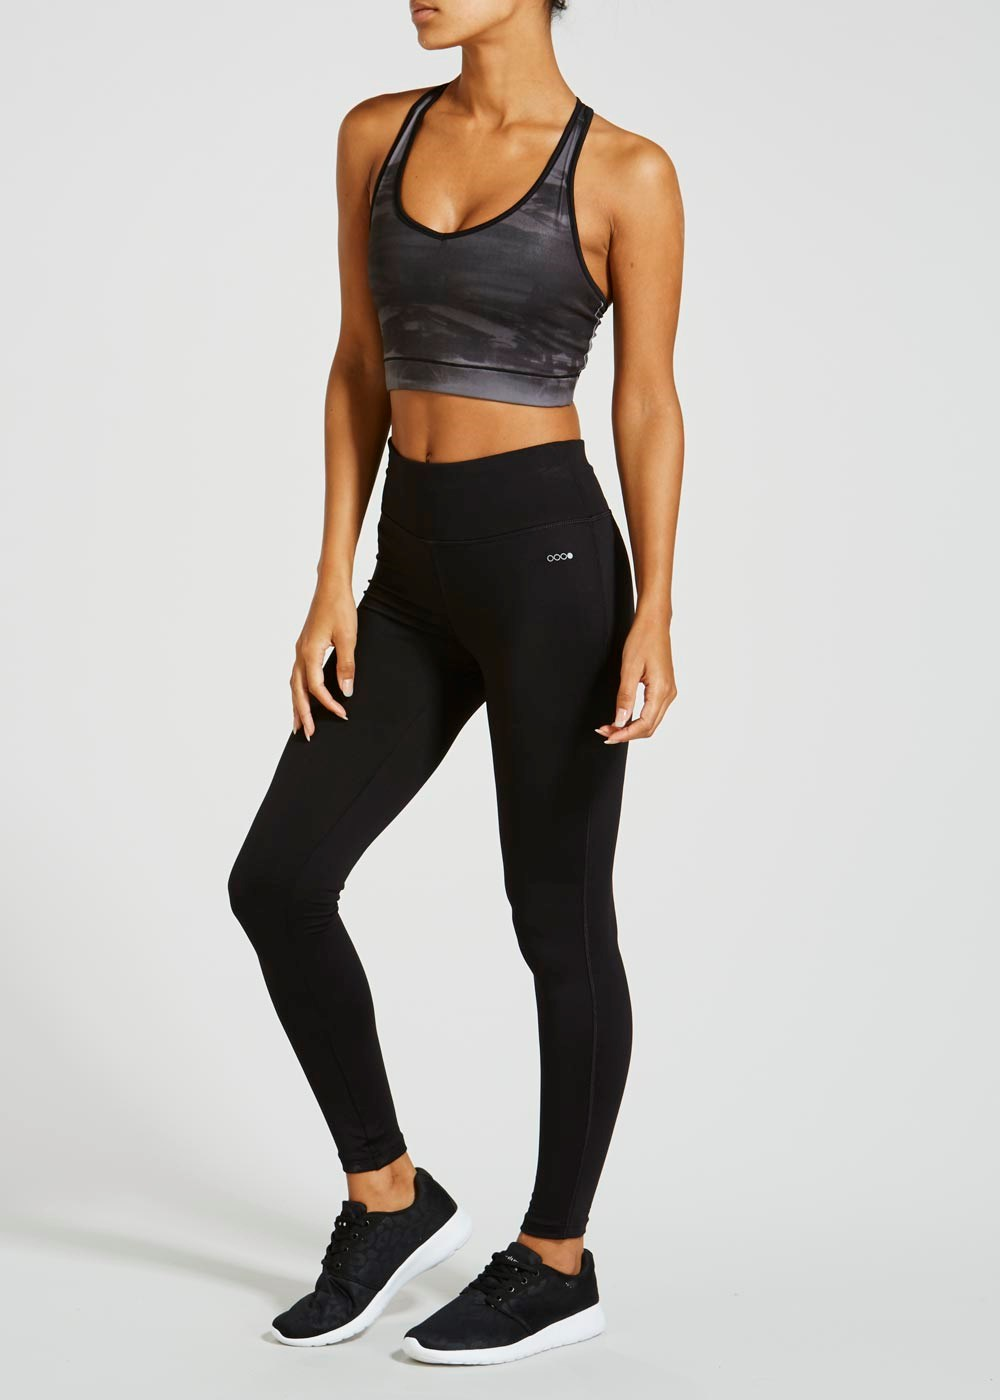 What Are The Best Sports Leggings?